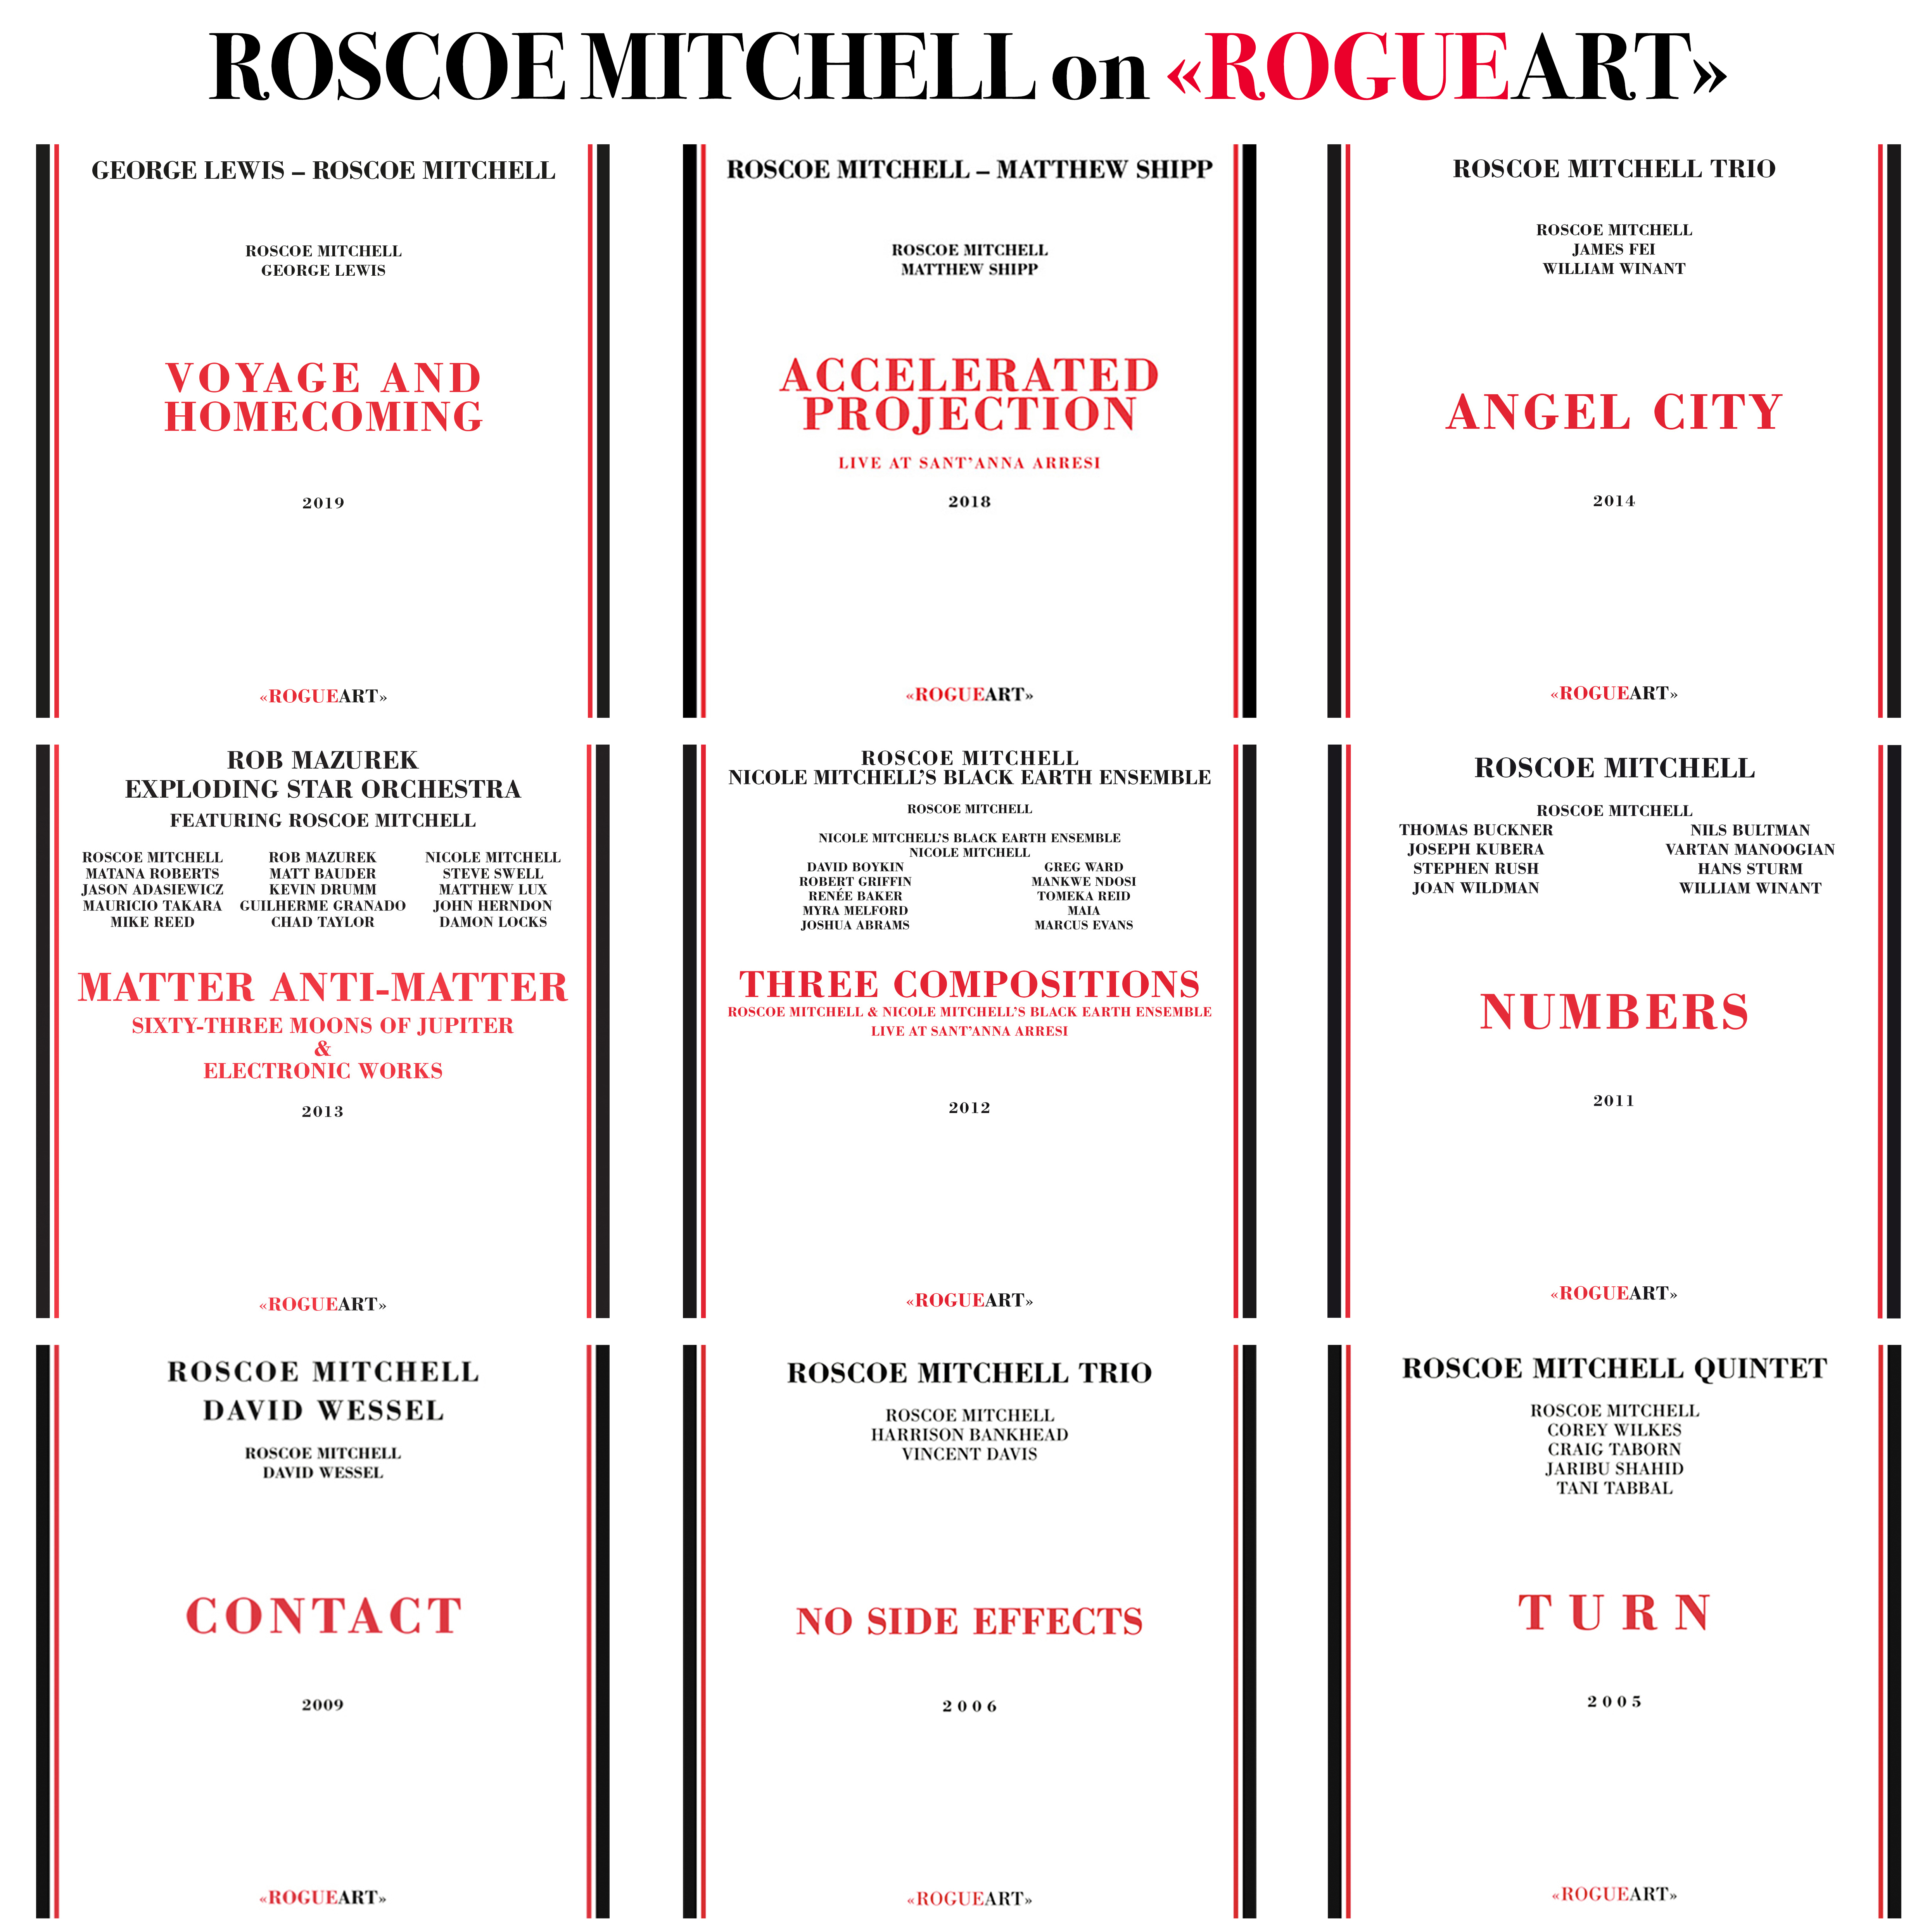 ROSCOE MITCHELL on ROGUEART